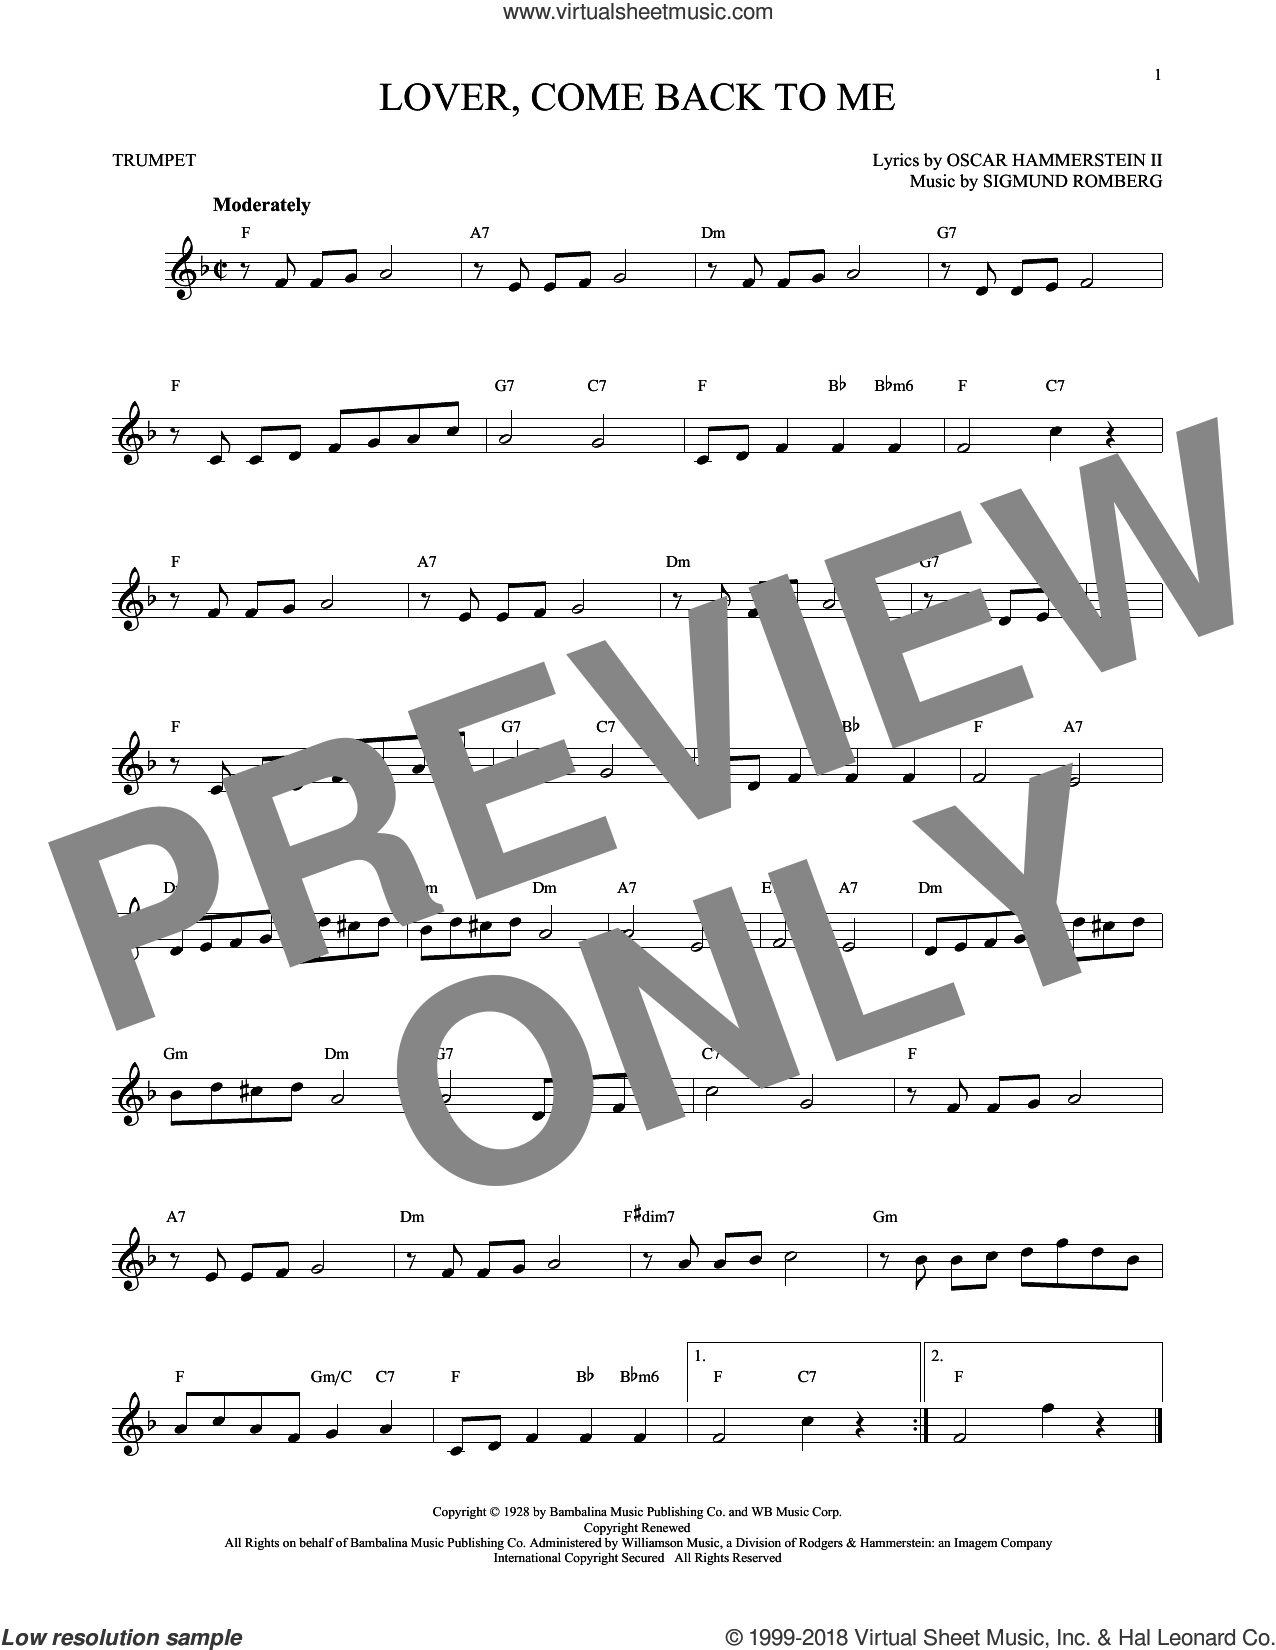 Lover, Come Back To Me sheet music for trumpet solo by Oscar II Hammerstein and Sigmund Romberg, intermediate skill level